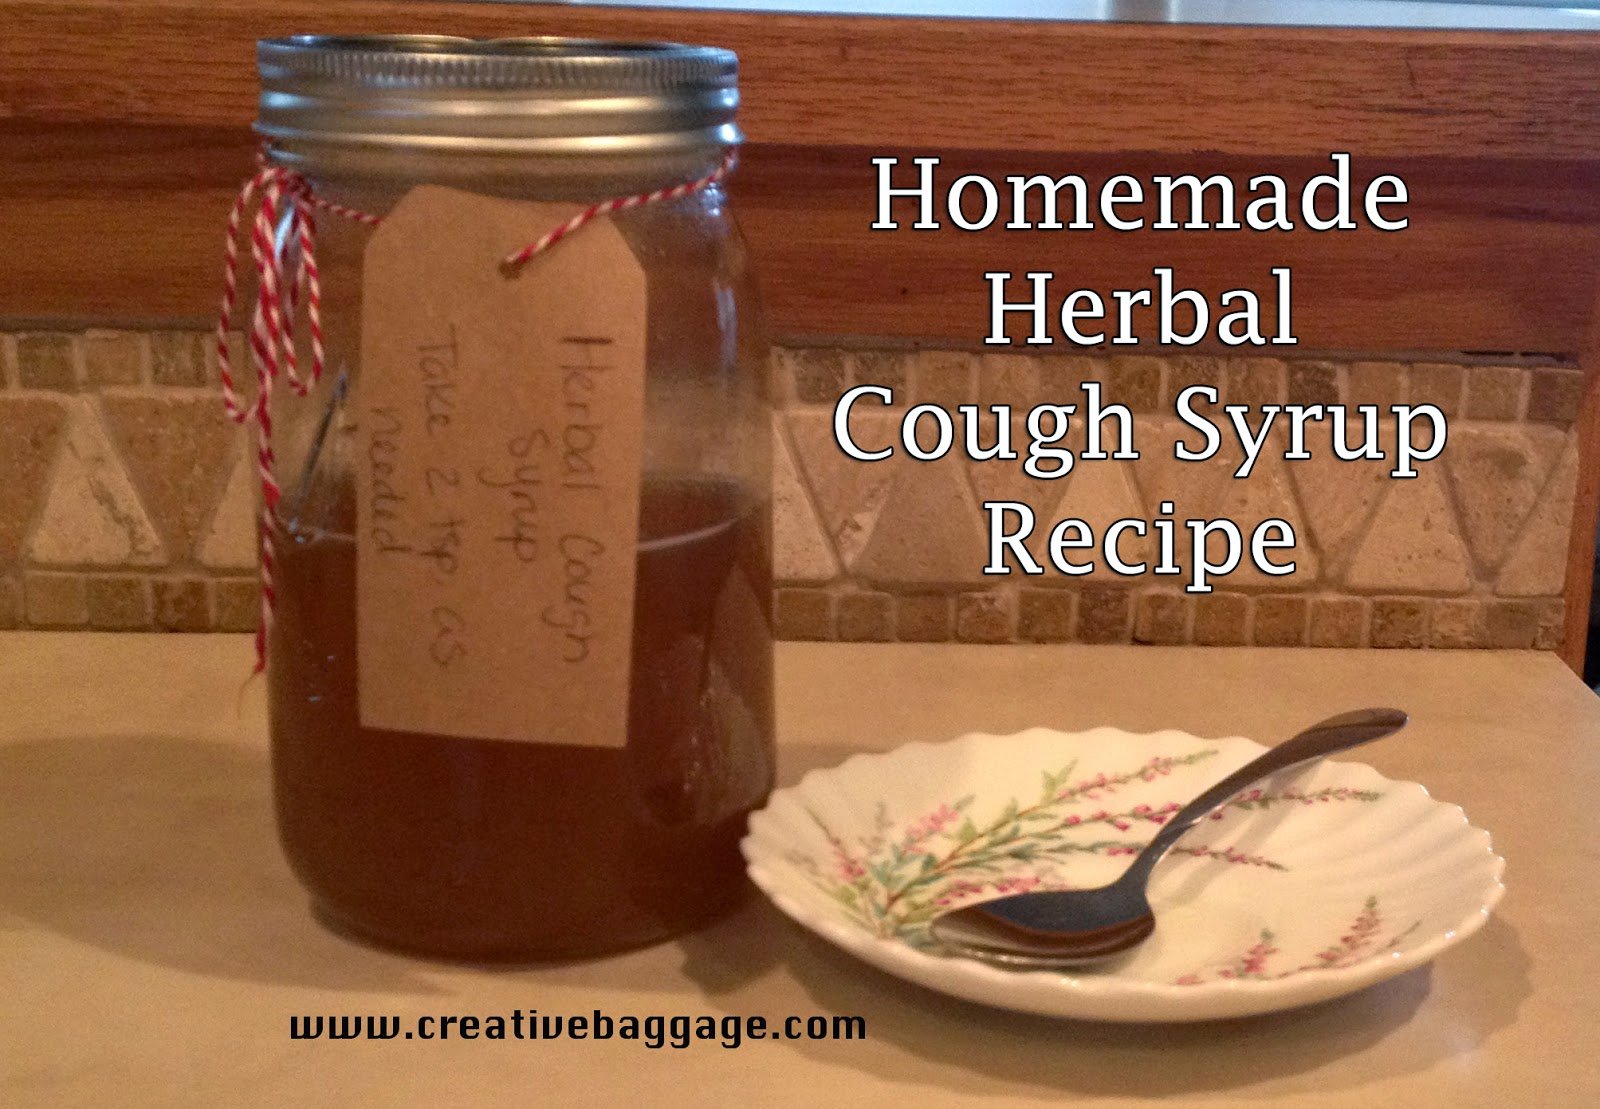 Homemade Herbal Cough Syrup Recipe